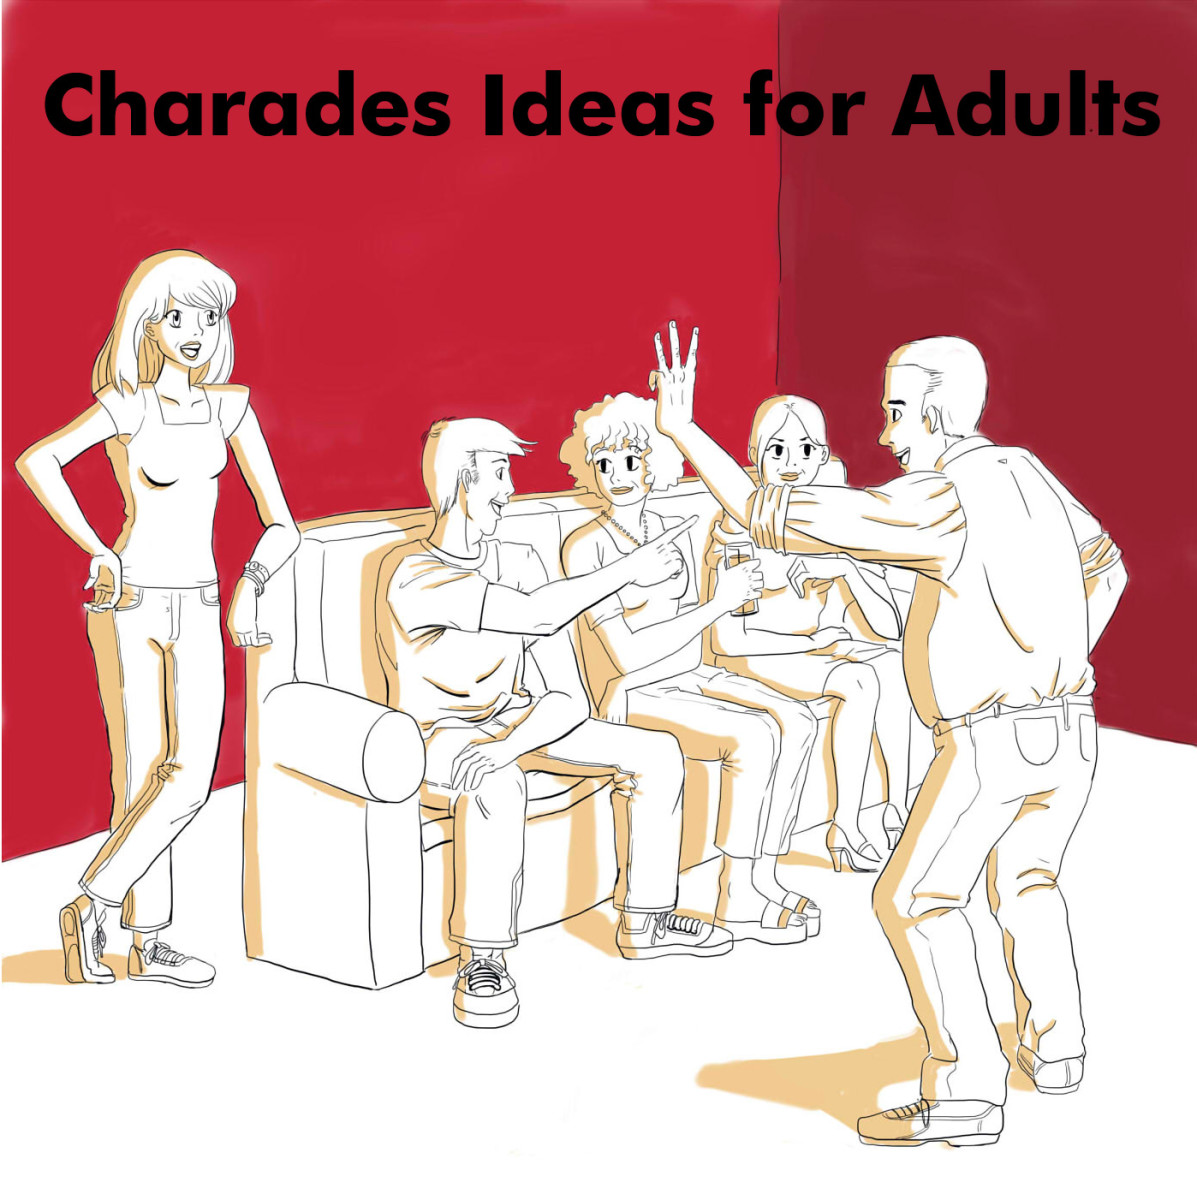 Find some challenging charades topics for your next party.